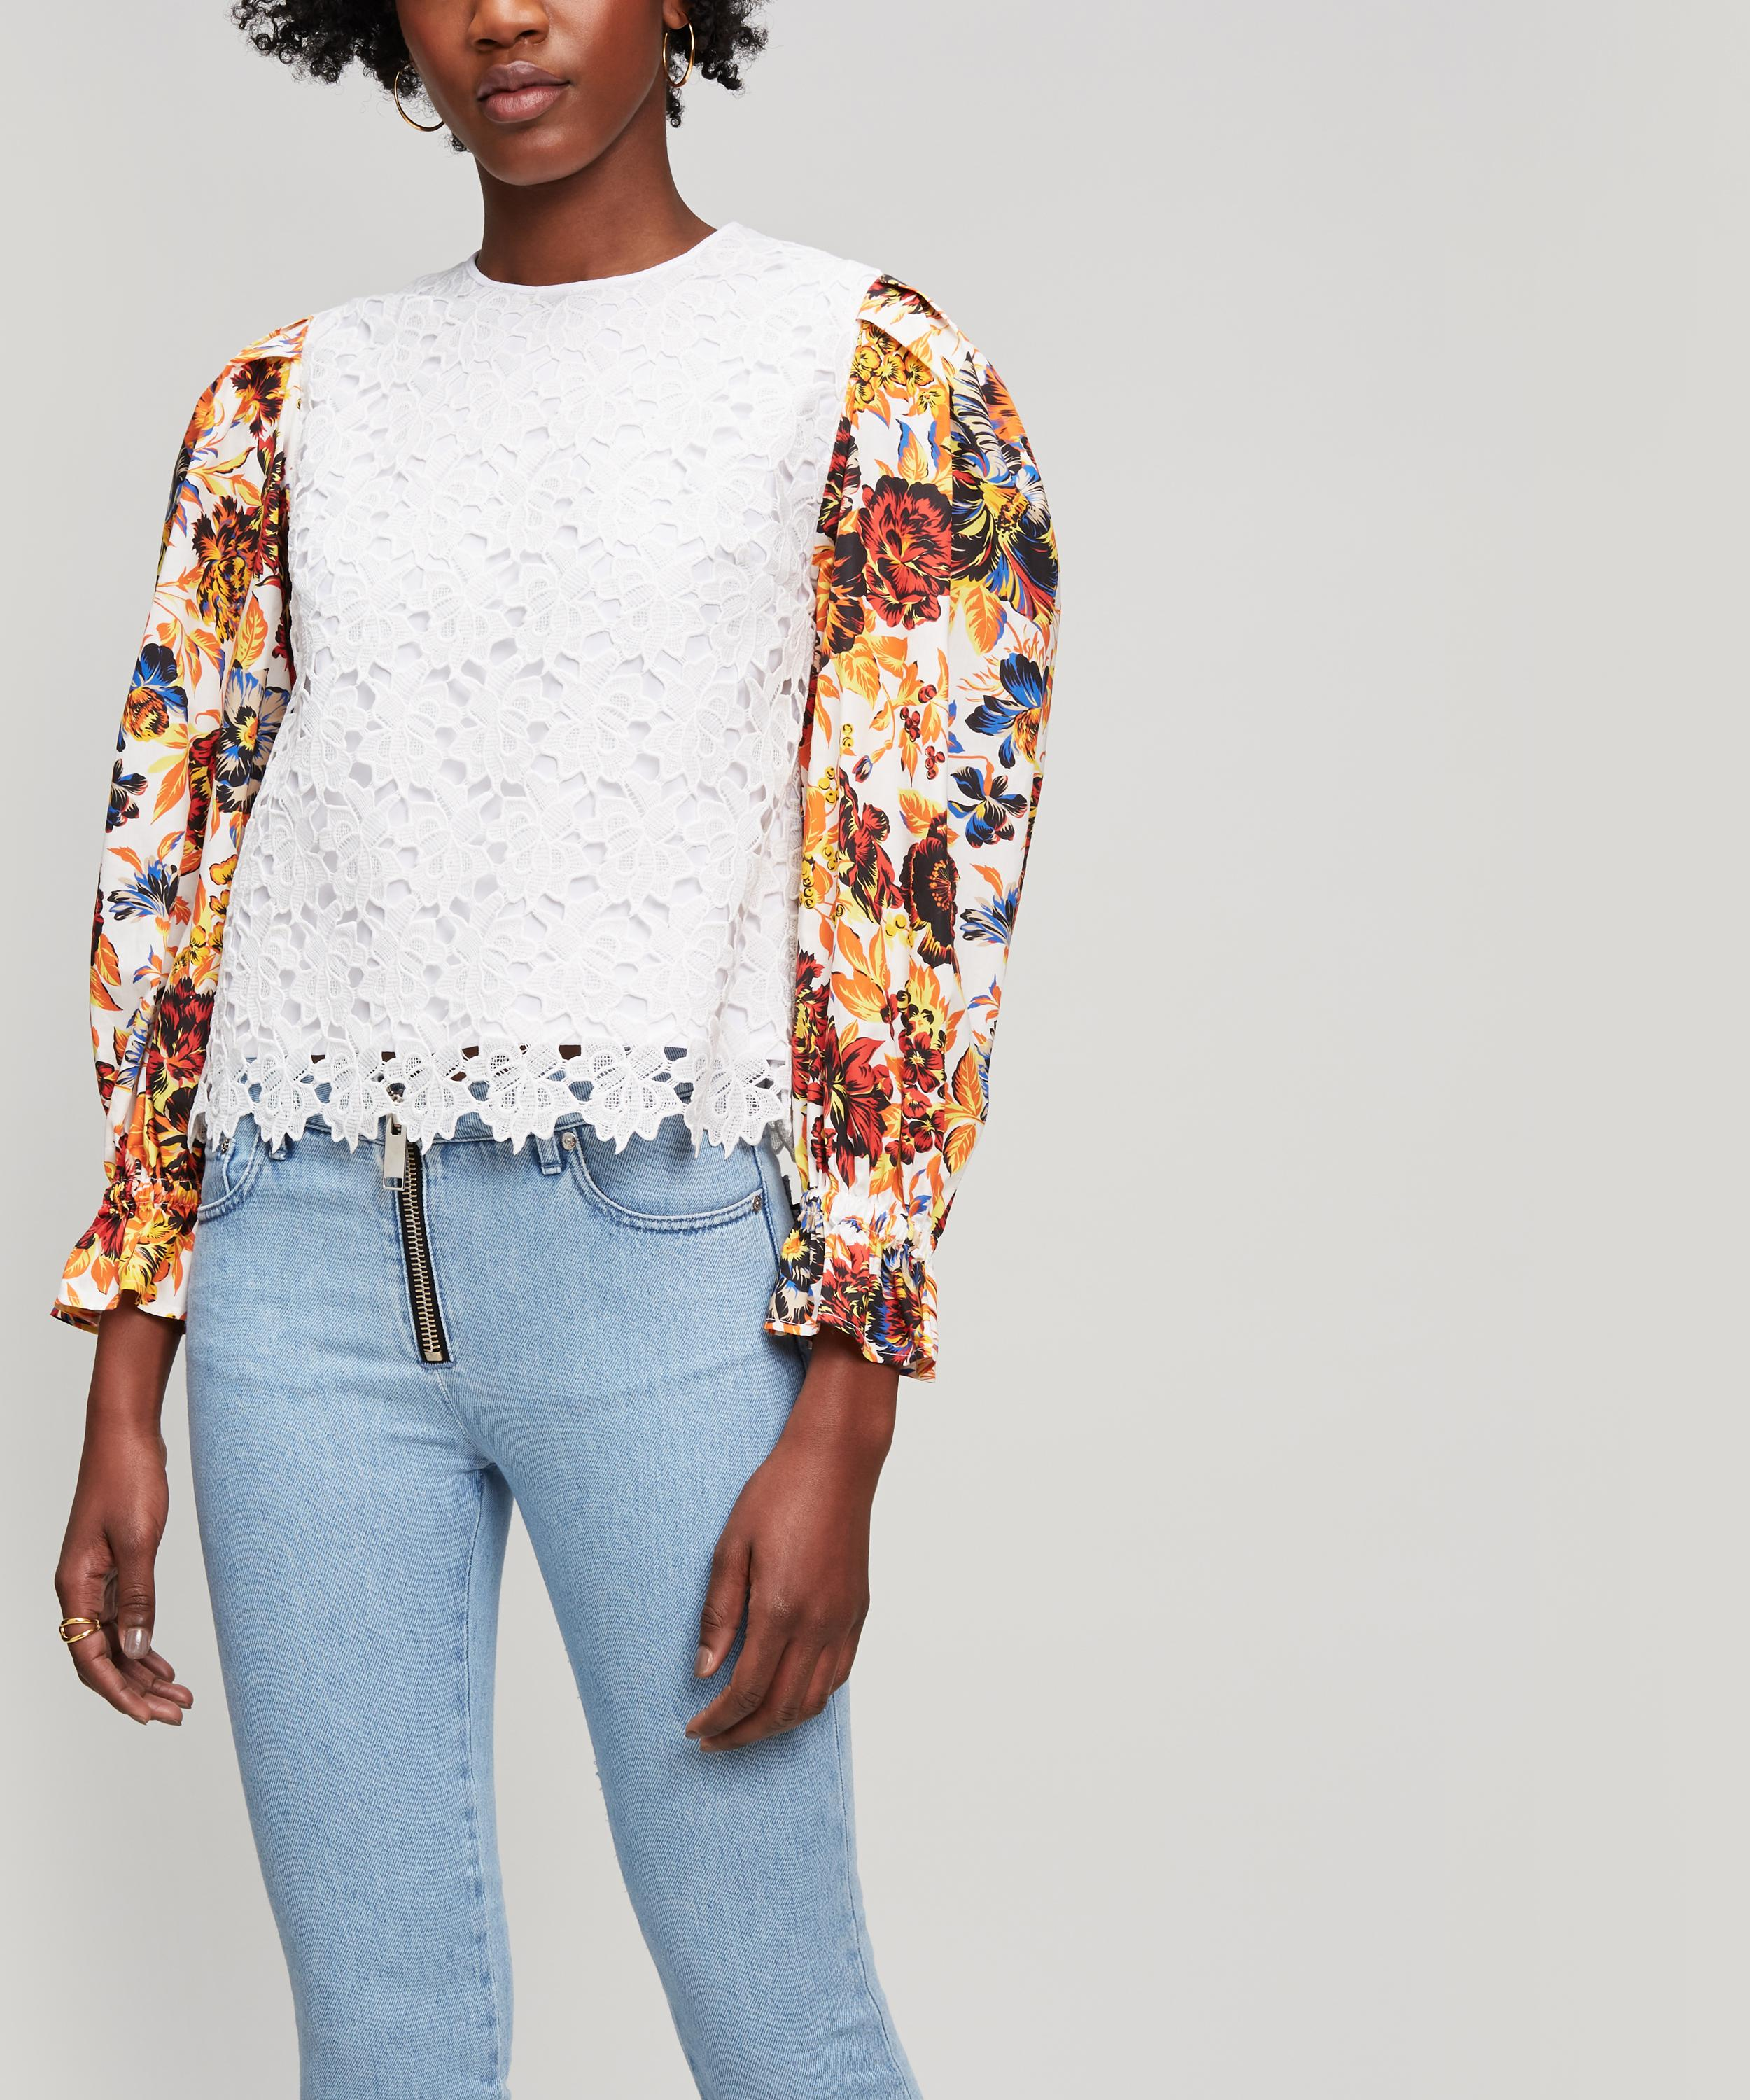 Lace top print sleeves from Liberty